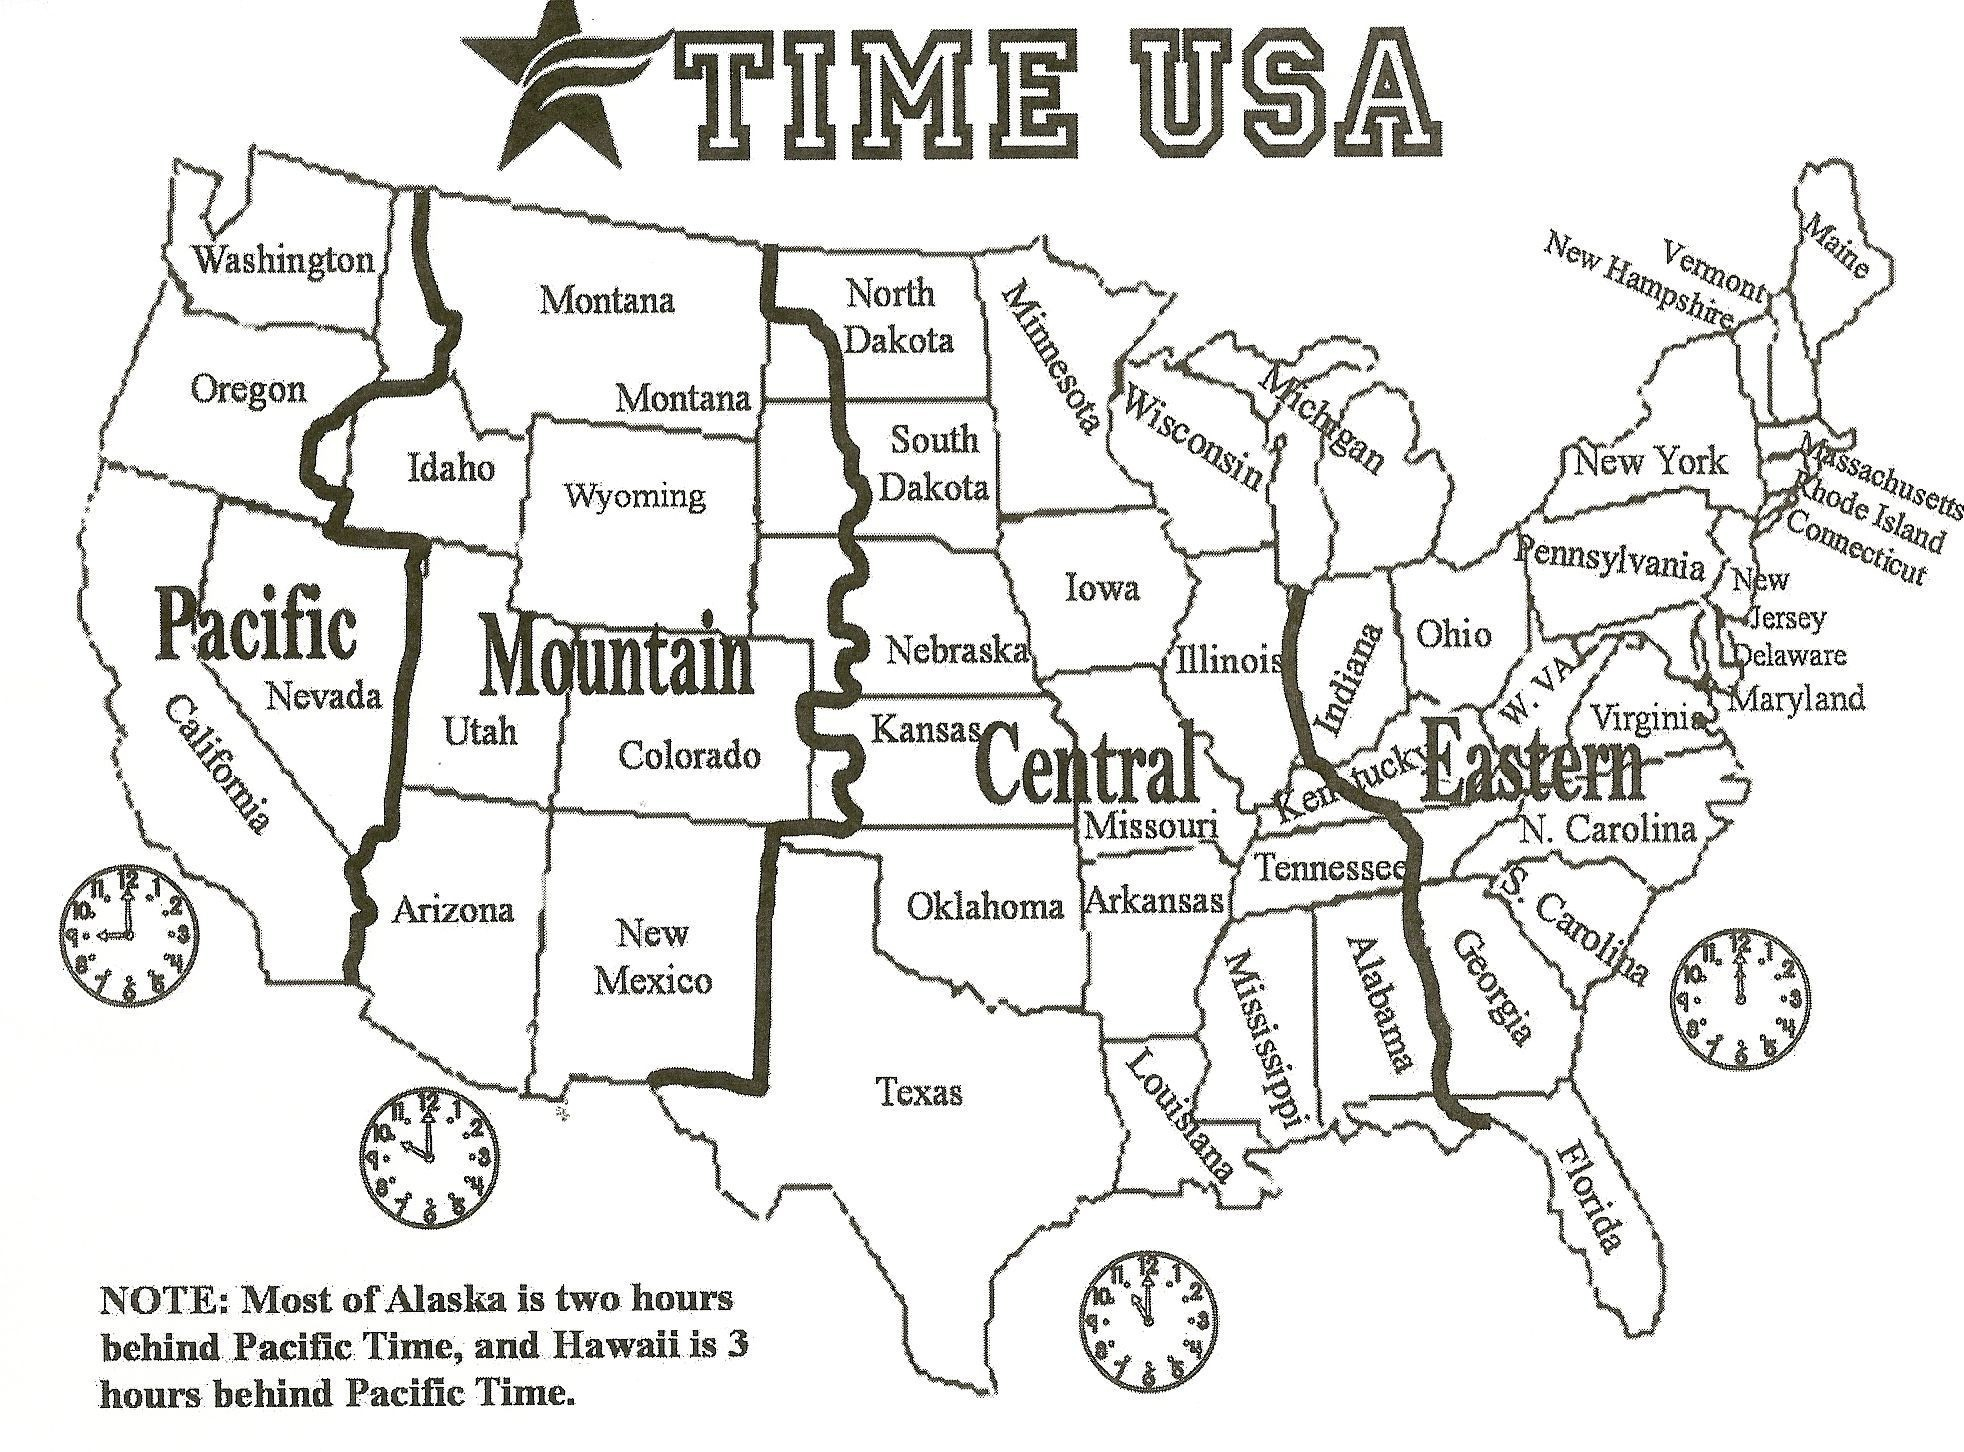 Printable Map United States Time Zones State Names Save Printable Us - Free Printable Us Timezone Map With State Names